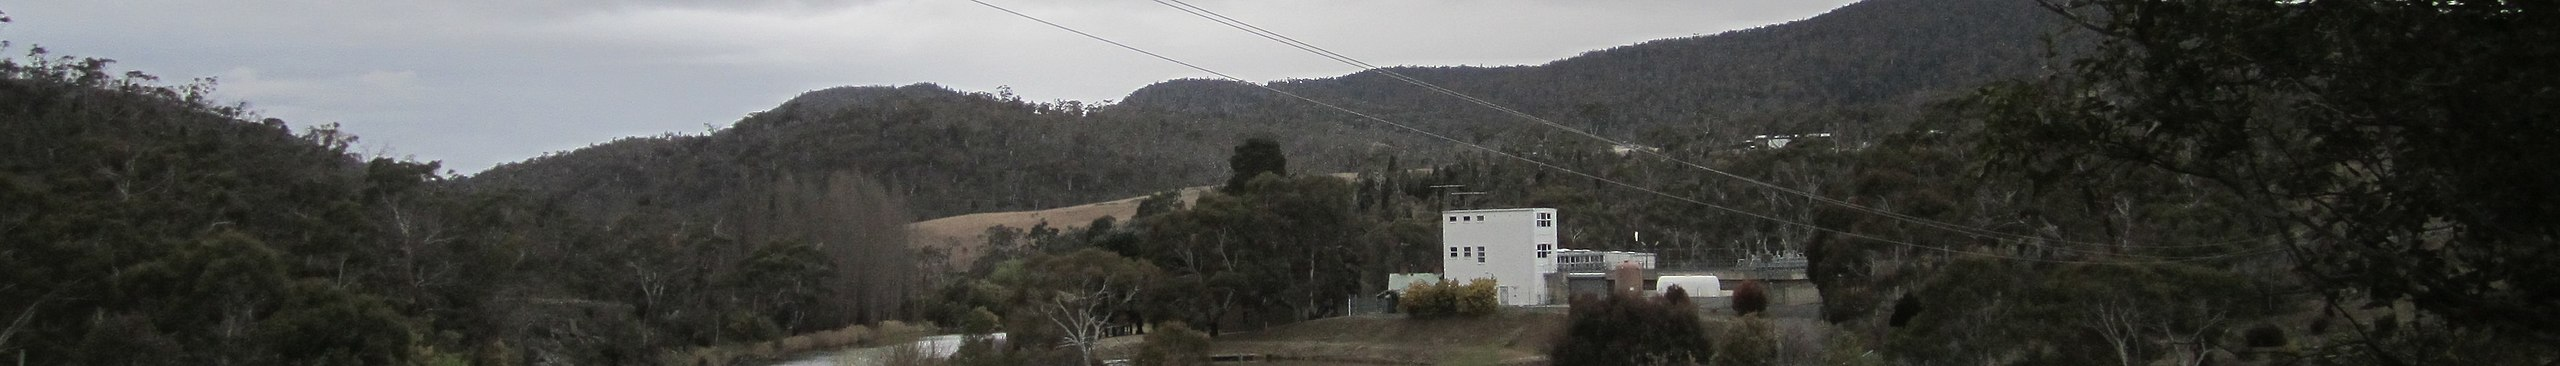 Cooma – Travel guide at Wikivoyage